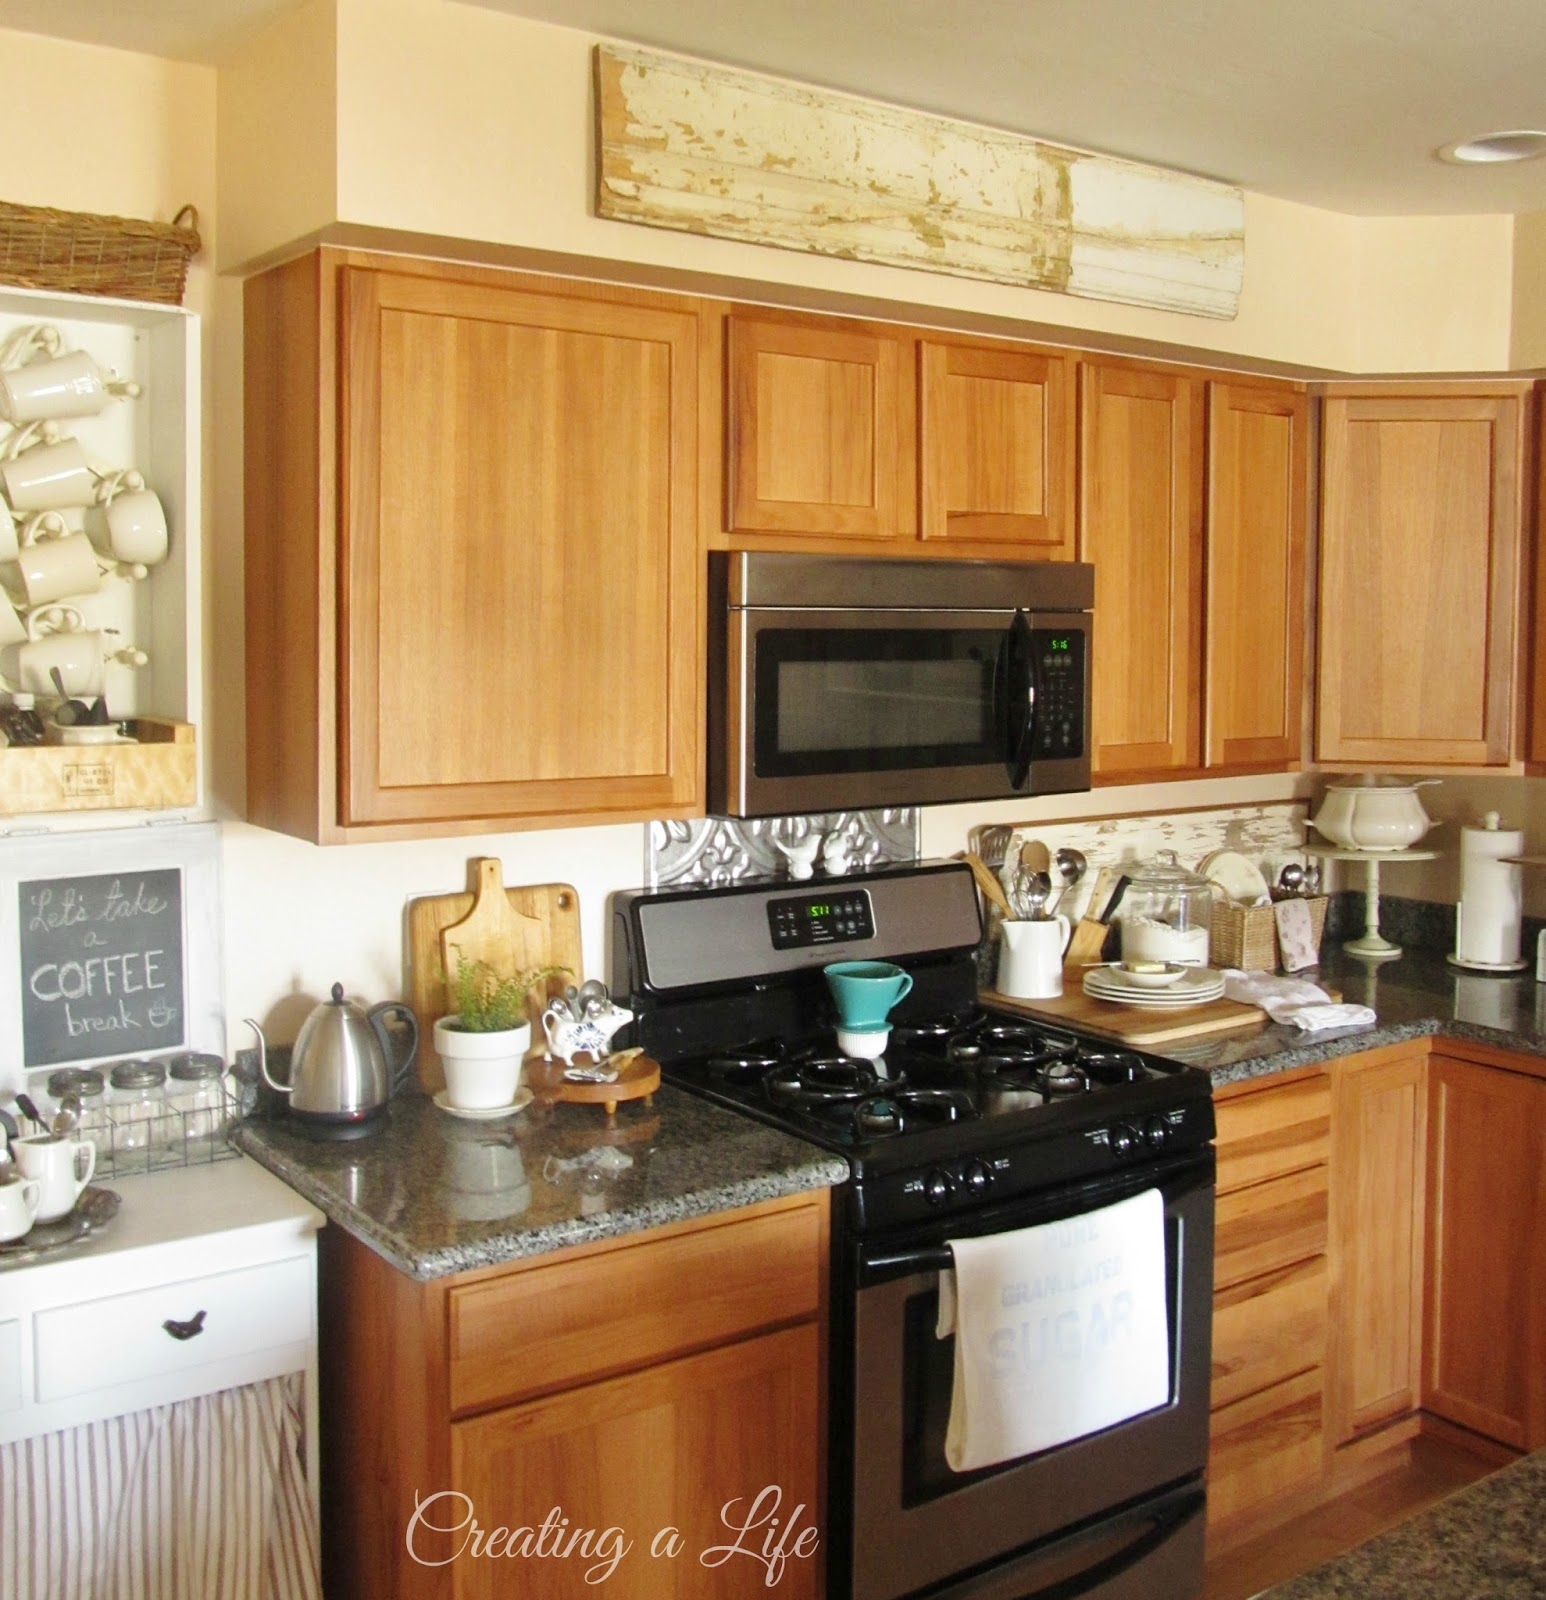 Kitchen Decorations For Above Cabinets: Creating A Life: Farmhouse Style Kitchen Update